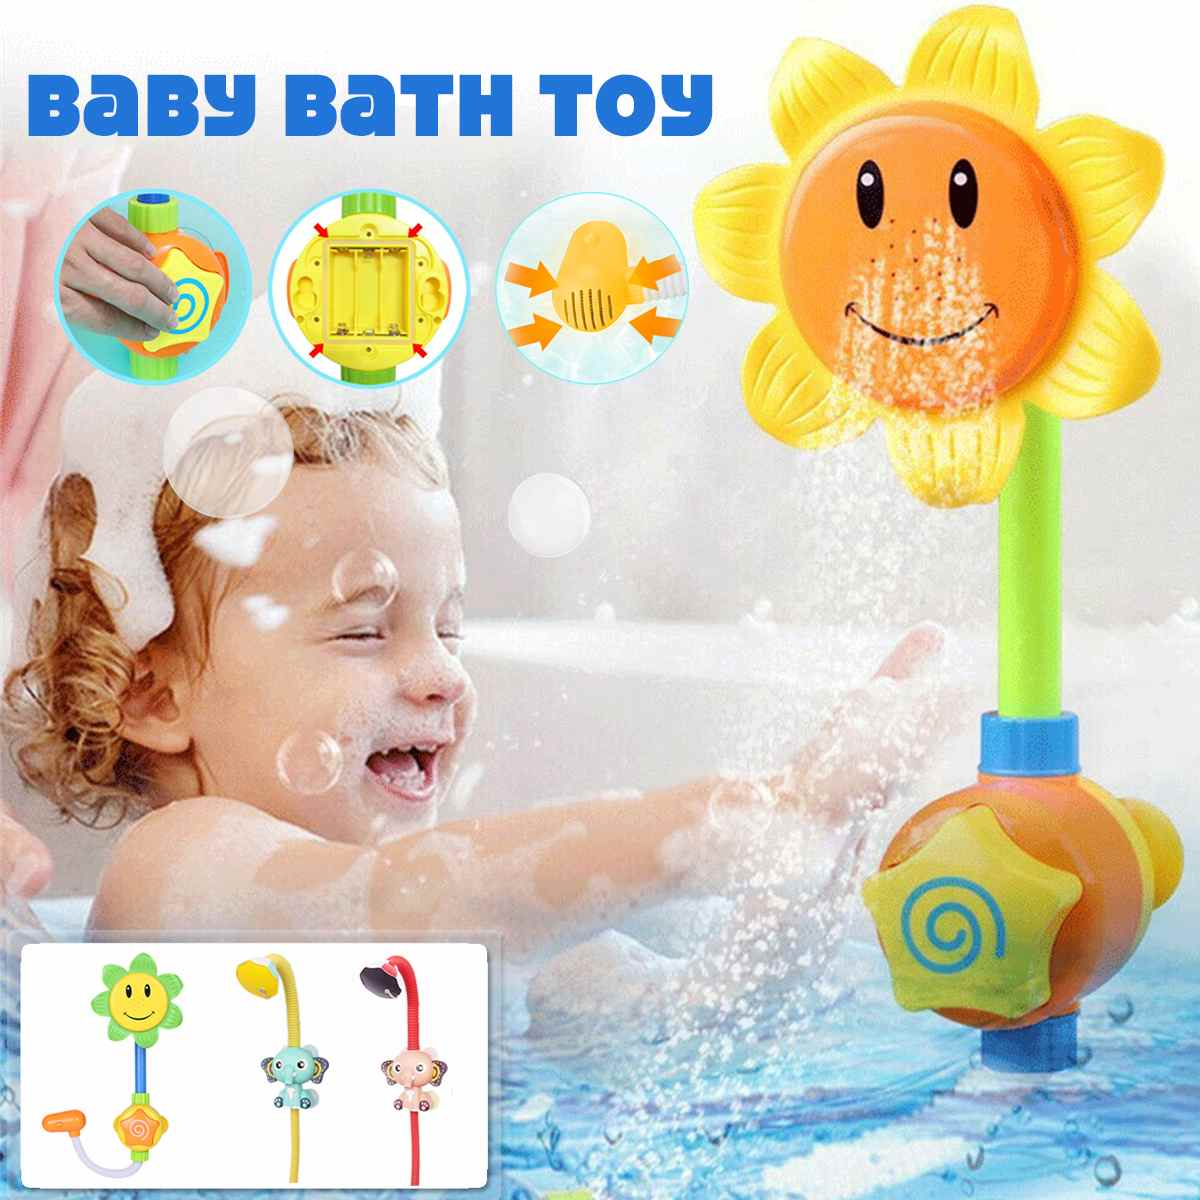 Baby Funny Water Game Bath Toy Bathing Tub Sunflower Shower Faucet Spray Water Swimming Bathroom Bath Toys For Children image